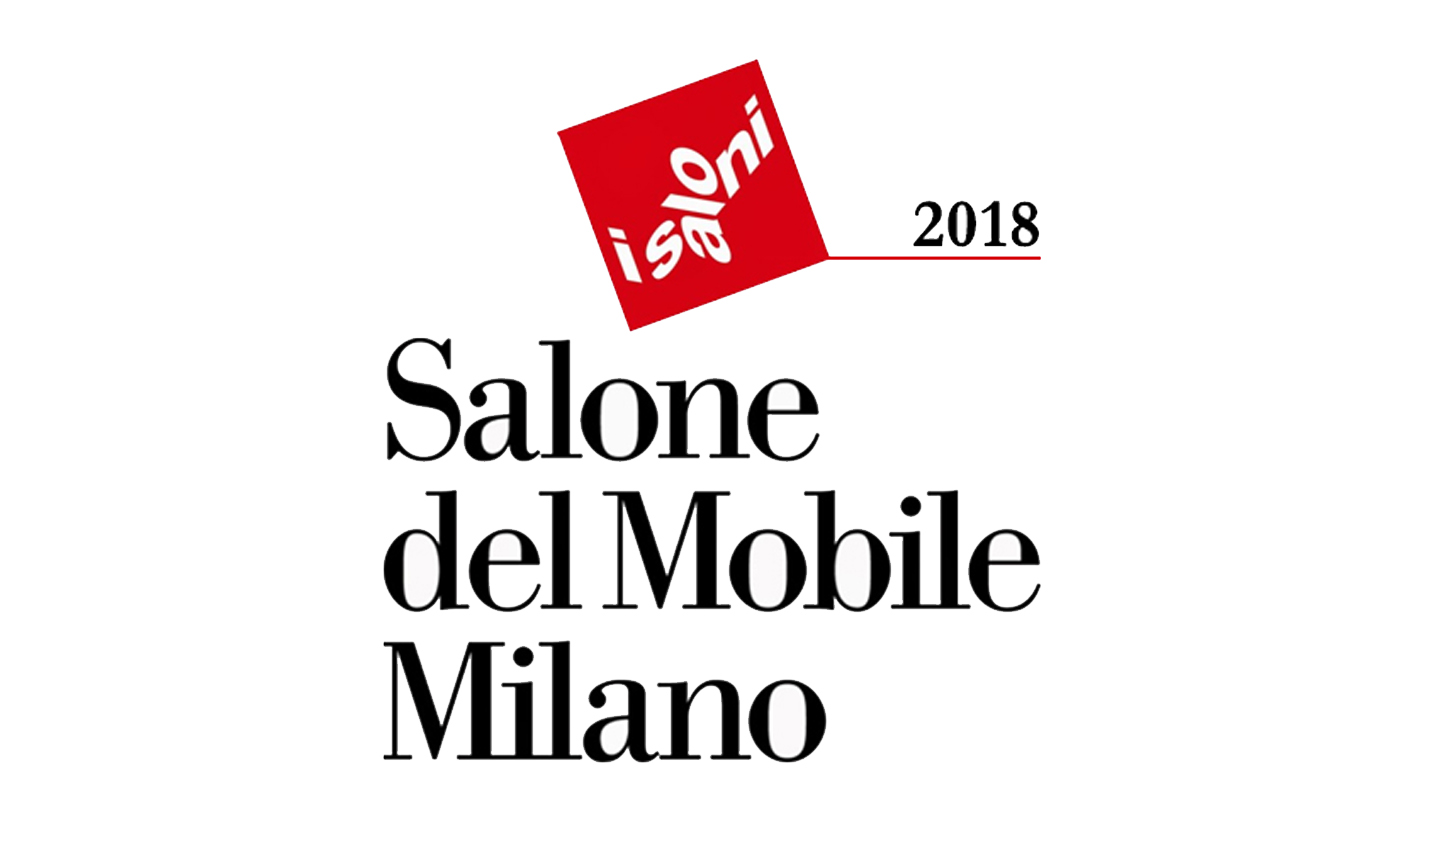 Meet The Winners of the CovetED Awards Presented at iSaloni 2018 first day at isaloni 2019 Highlights Of The First Day At iSaloni 2019 Meet The Winners of the CovetED Awards Presented at iSaloni 2018 01 first day at isaloni 2019 Highlights Of The First Day At iSaloni 2019 Meet The Winners of the CovetED Awards Presented at iSaloni 2018 01